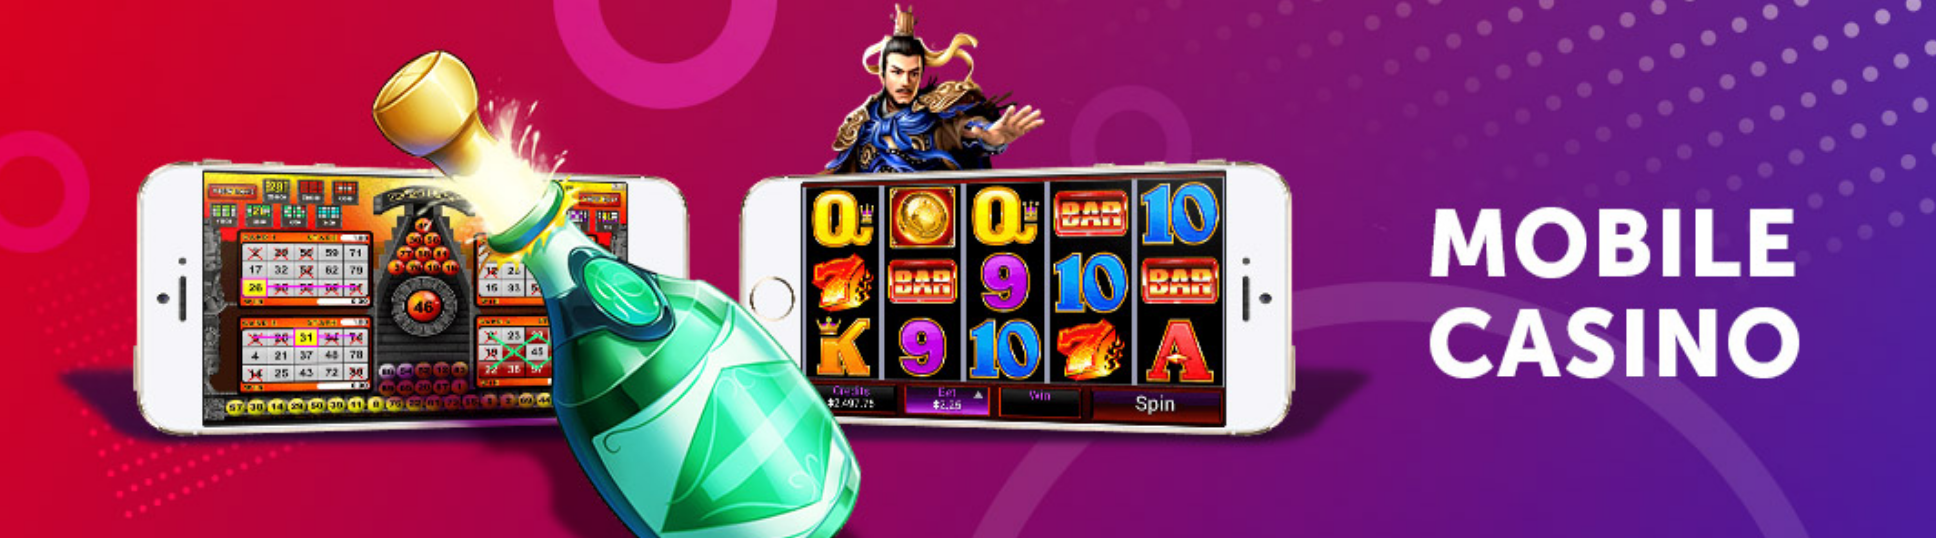 test casino mobile